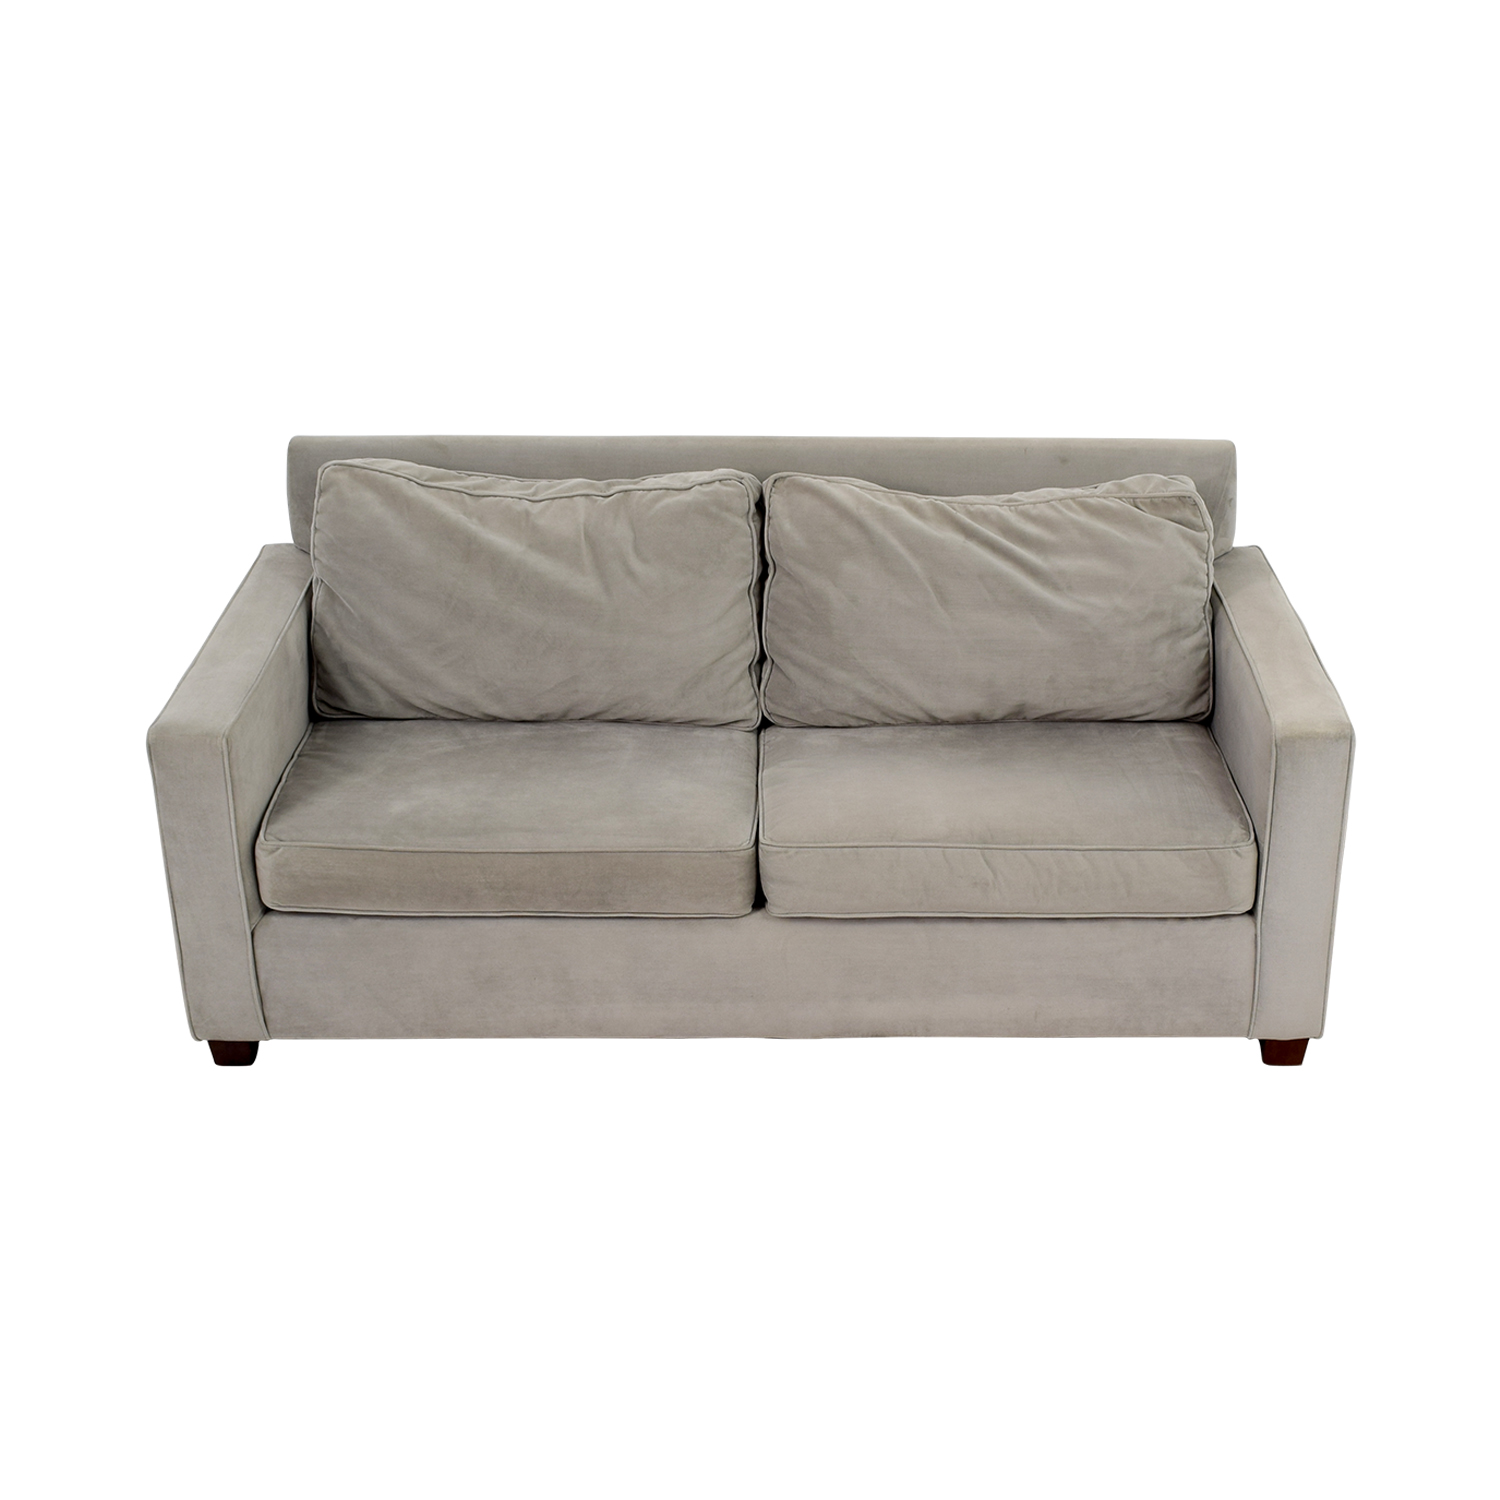 47% OFF West Elm West Elm Henry Grey Sofa Sofas